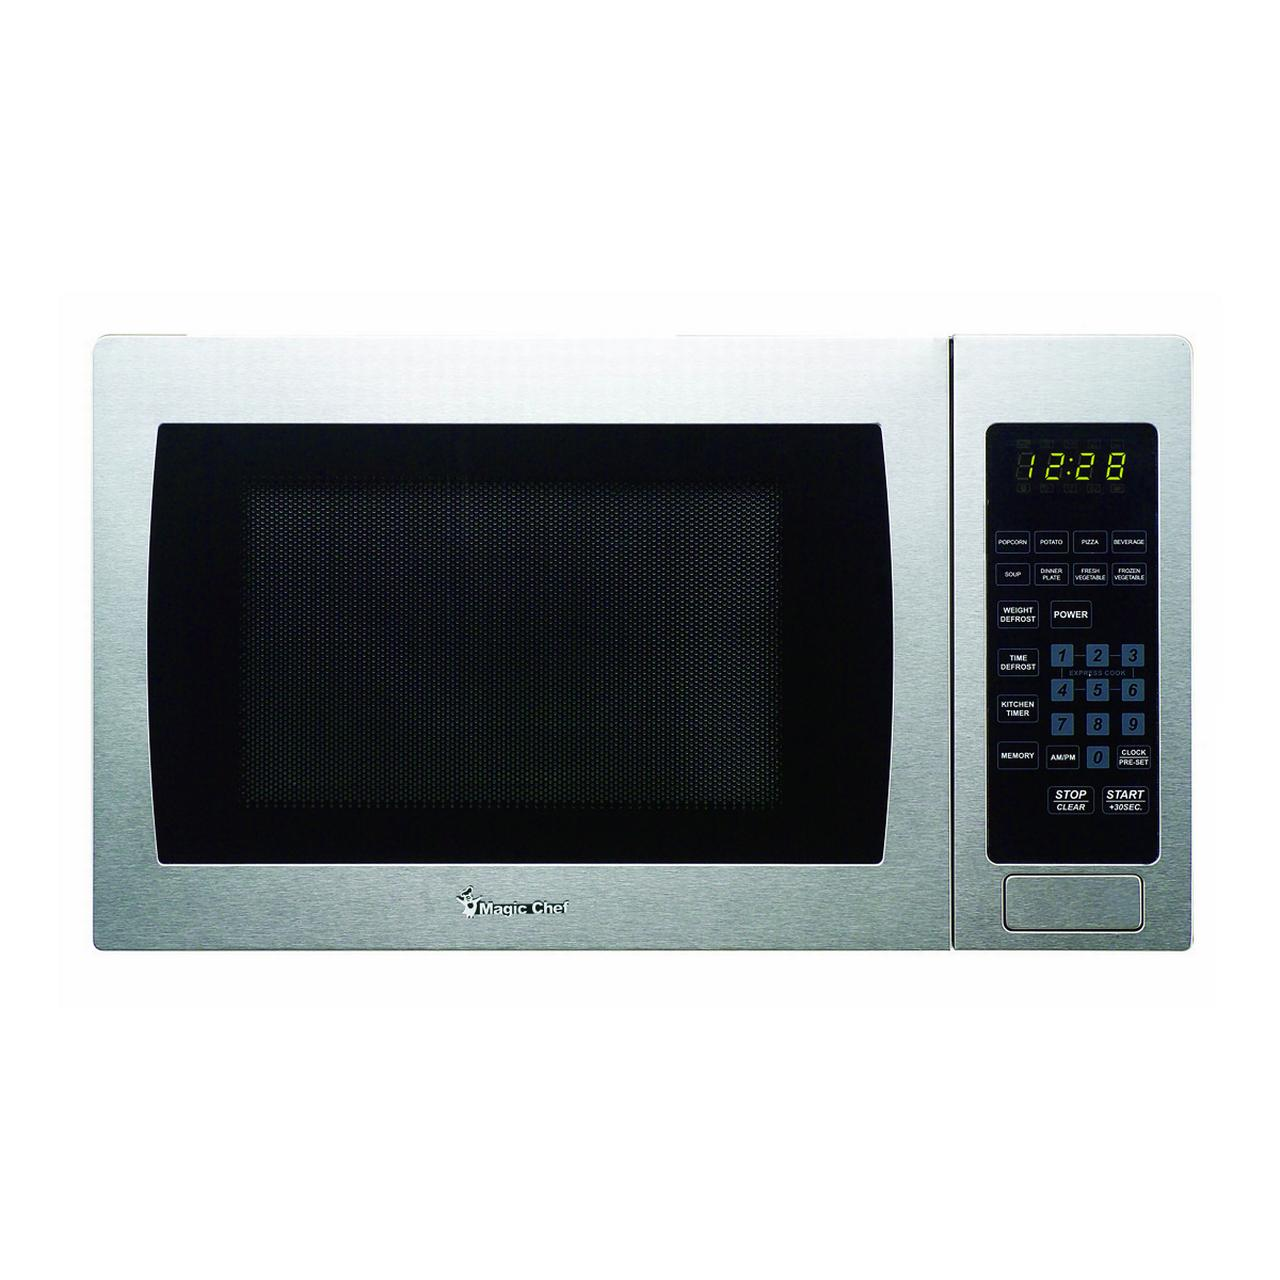 Magic Chef MCM990ST Countertop Microwave 900W - Silver